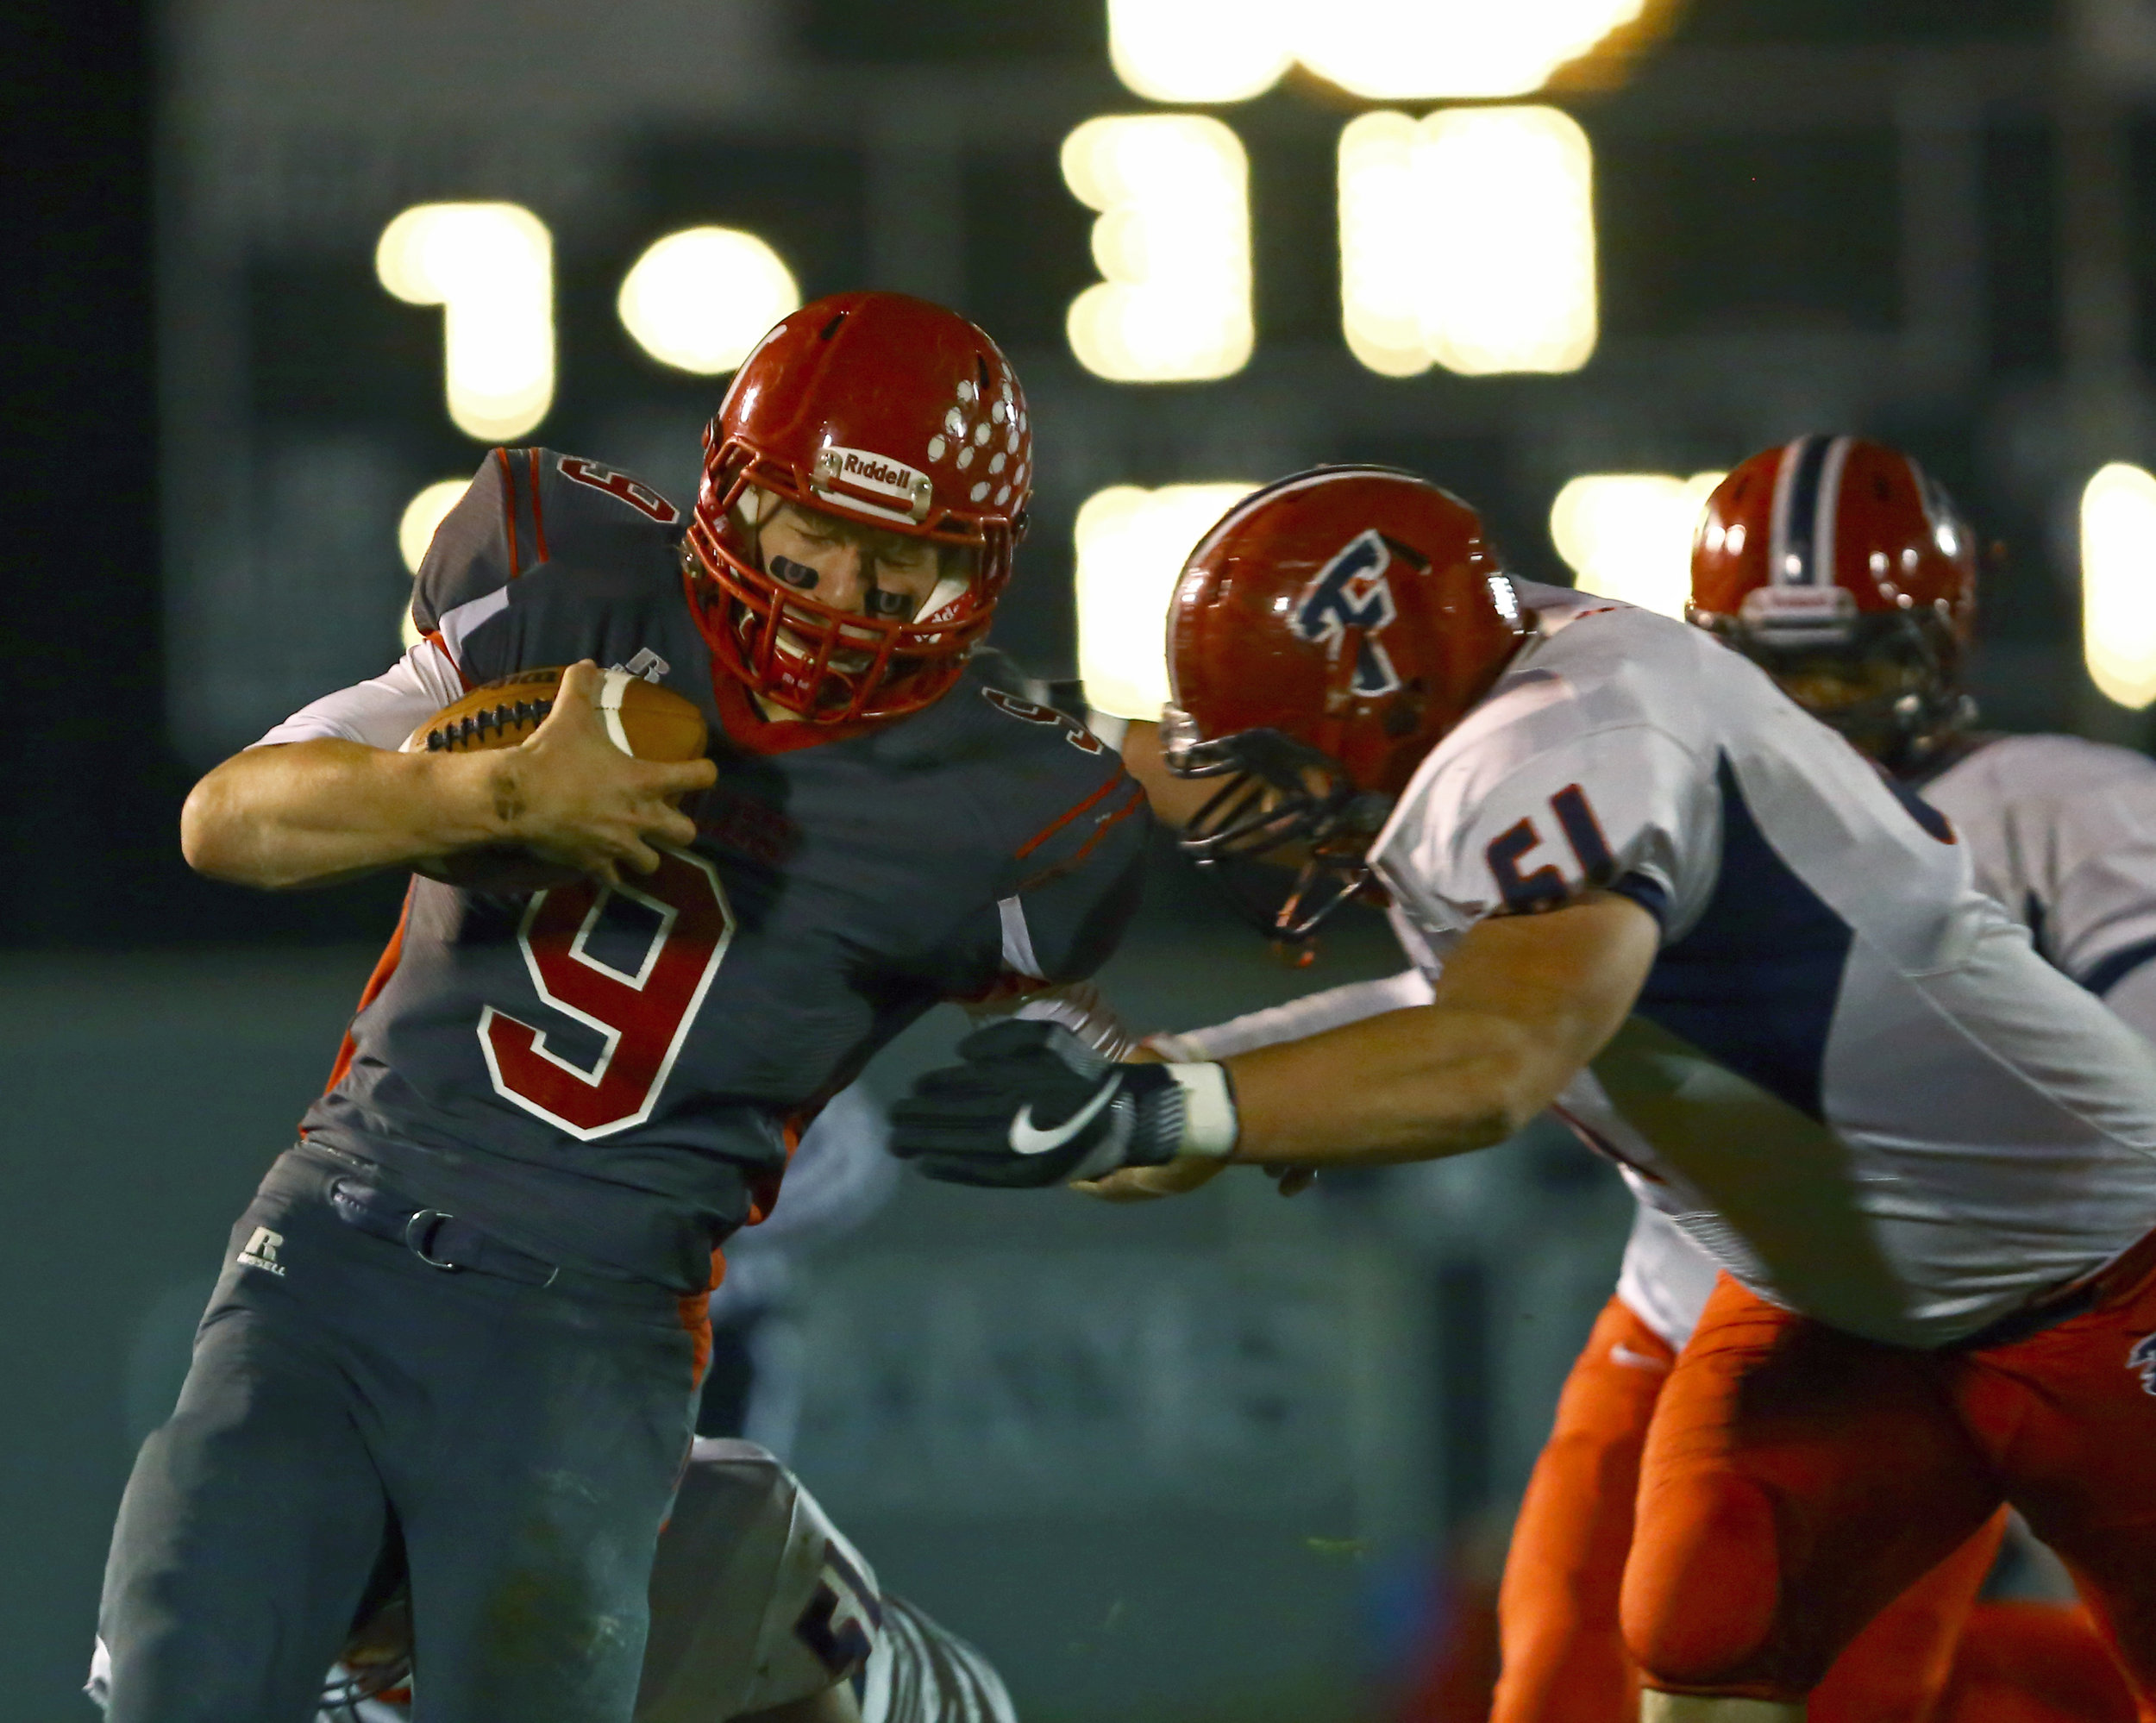 Bedford High School quarterback Joey Wiemer (9) braces for a tackle from Franklin High School defensive lineman Devin Visnaw (61) during the football game at Bedford High School in Temperance, Mi. on Friday, Nov. 4, 2016.